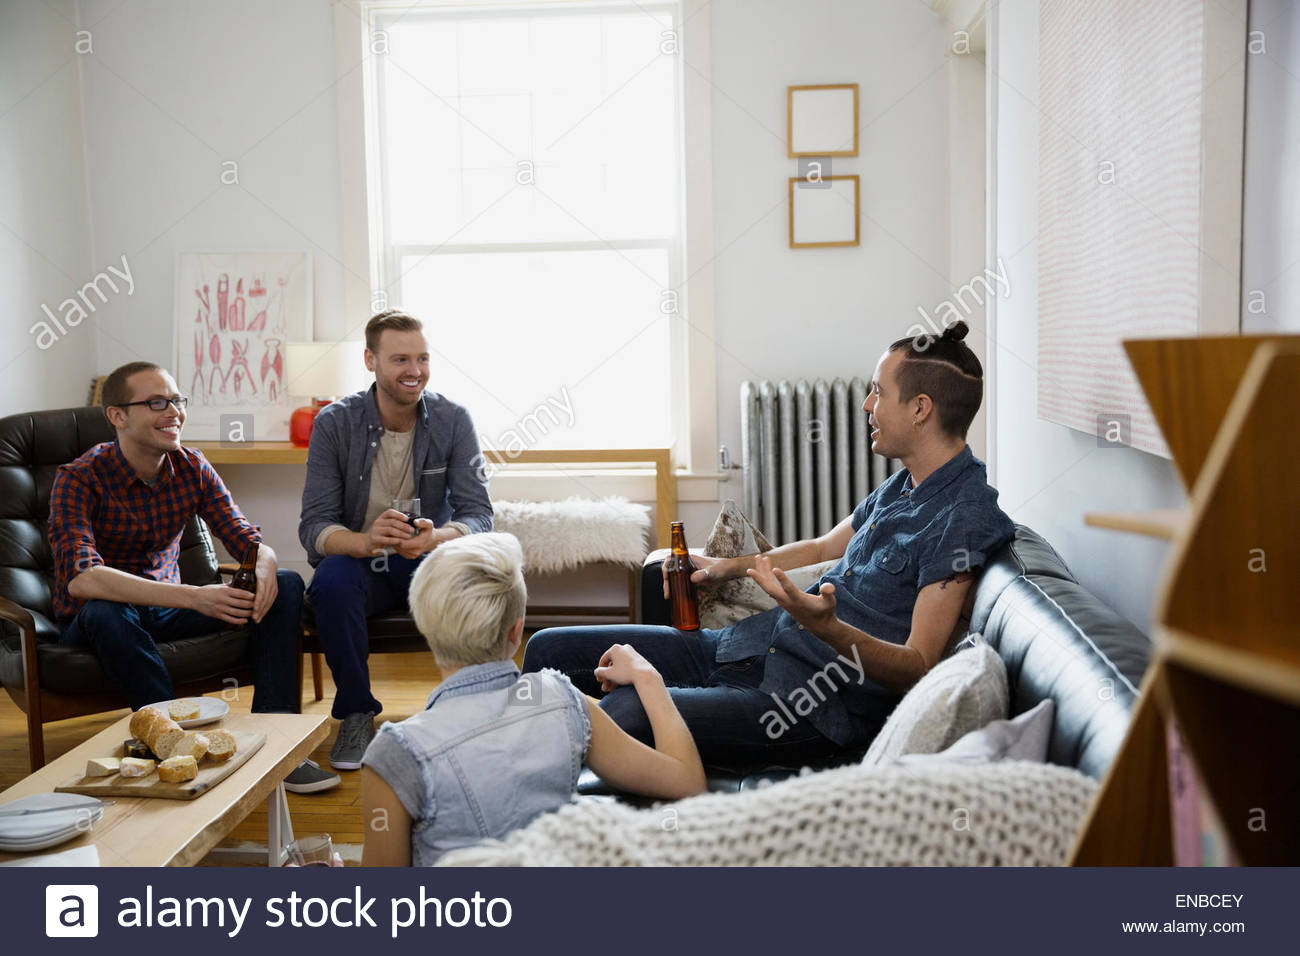 Homosexual and heterosexual couples hanging out living room - Stock Image